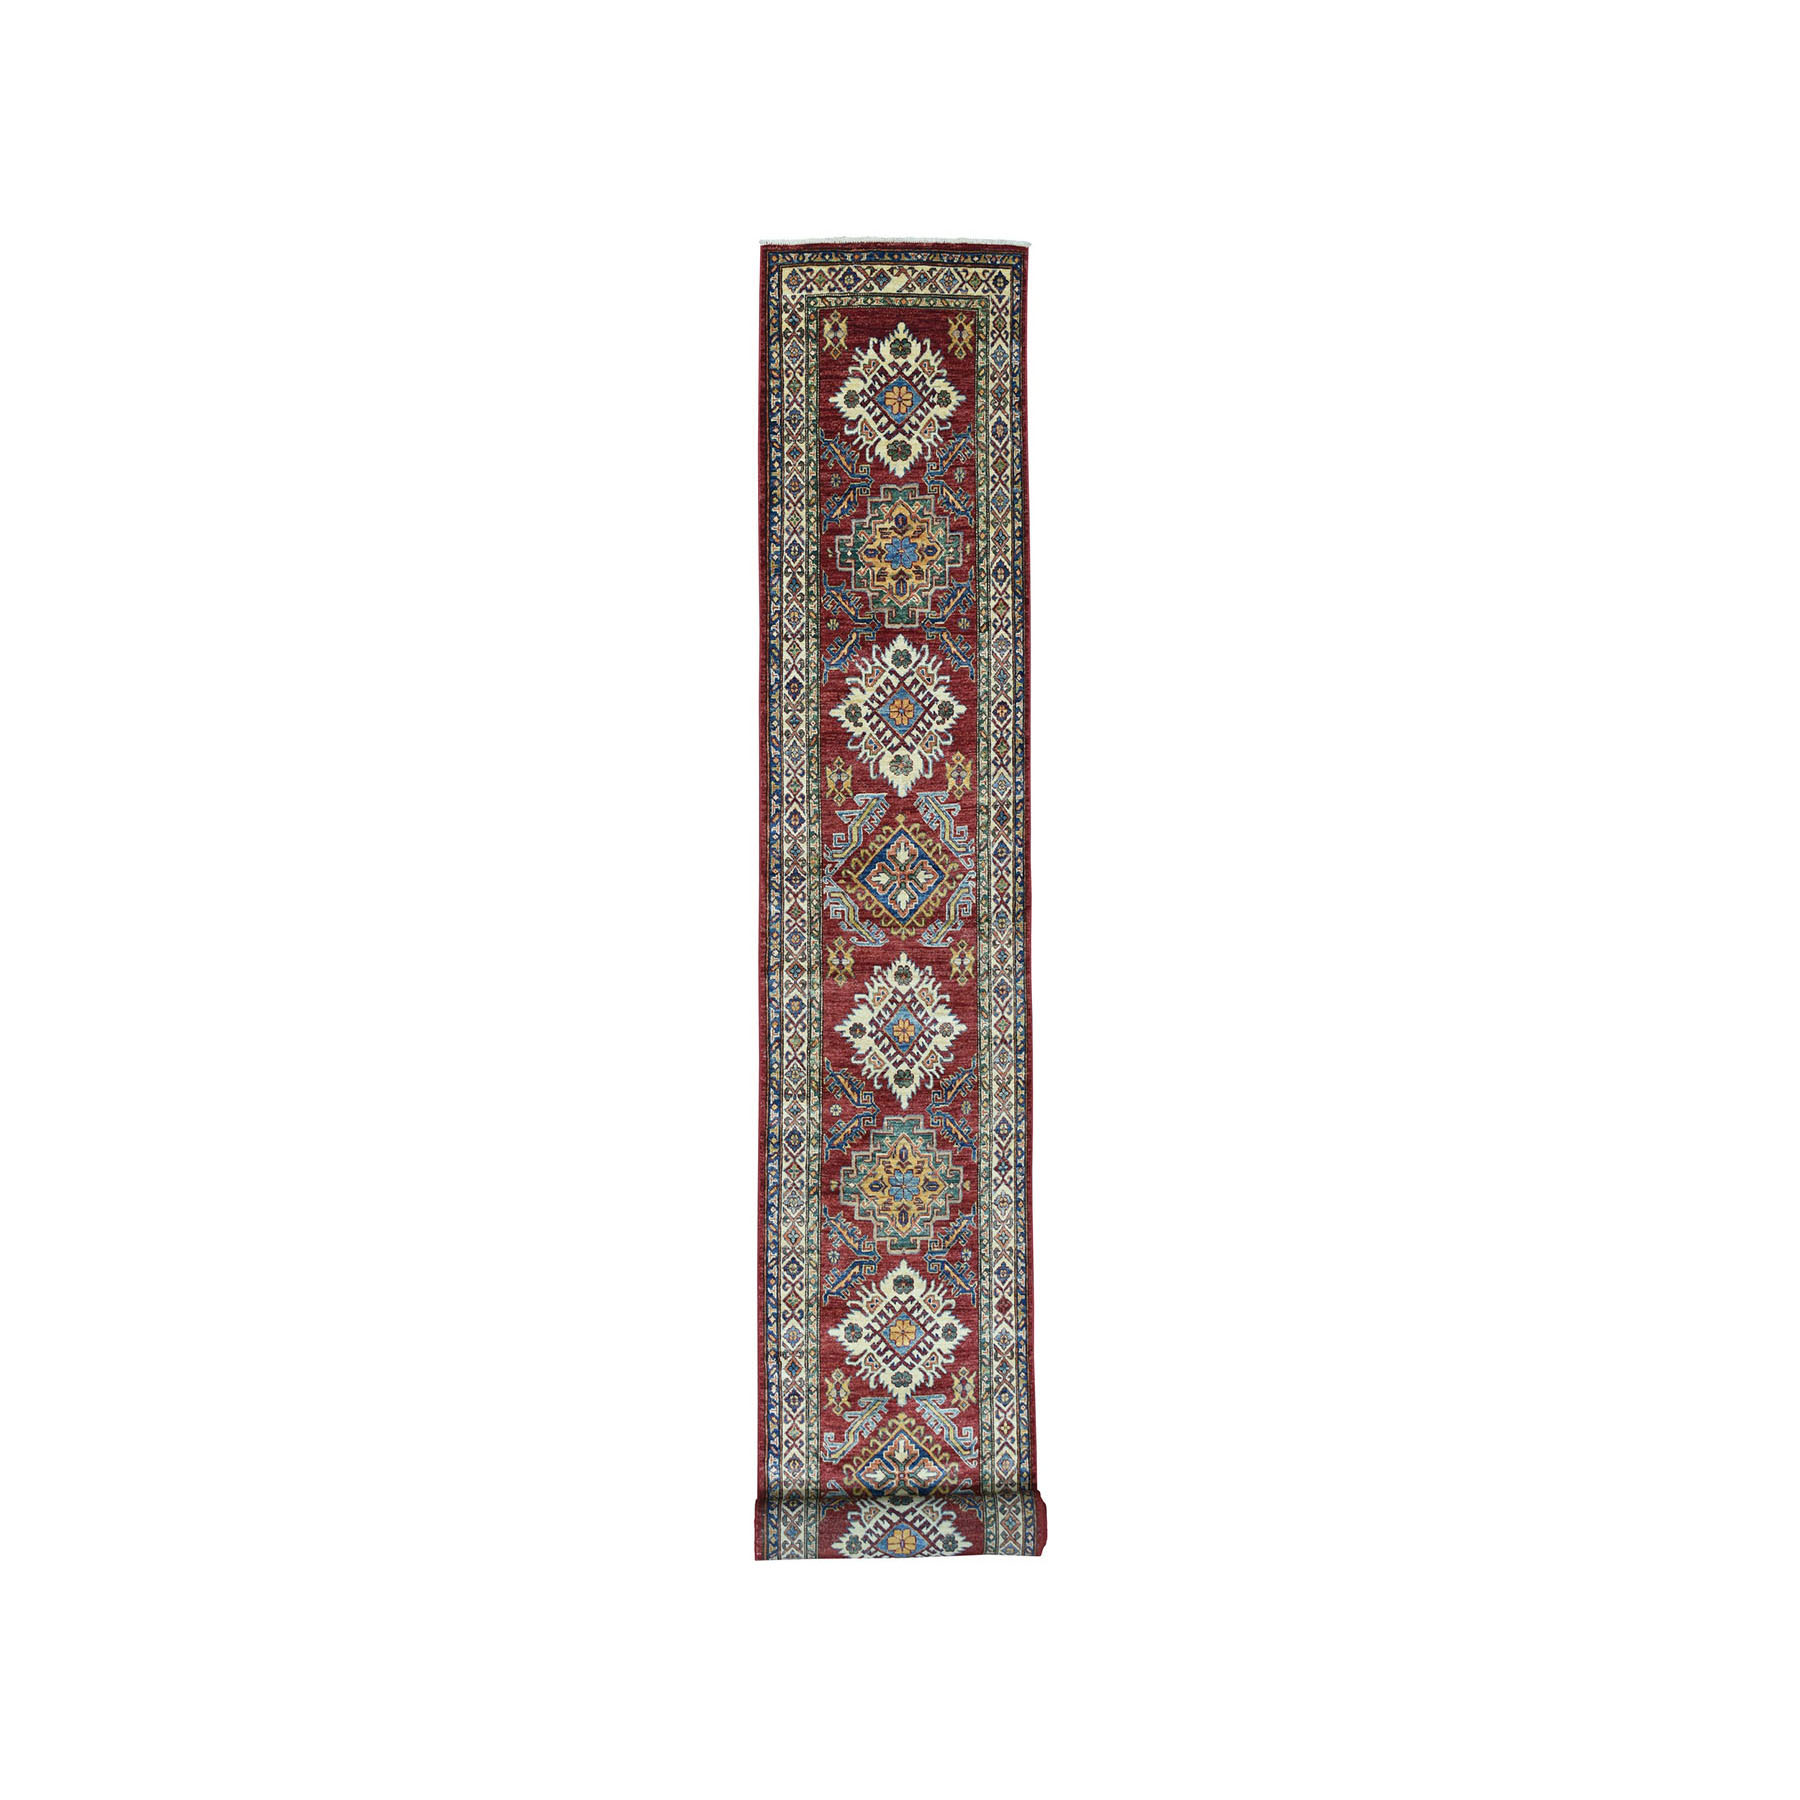 "2'8""x20' Red Super Kazak Geometric Design XL Runner Pure Wool Hand-Knotted Oriental Rug"